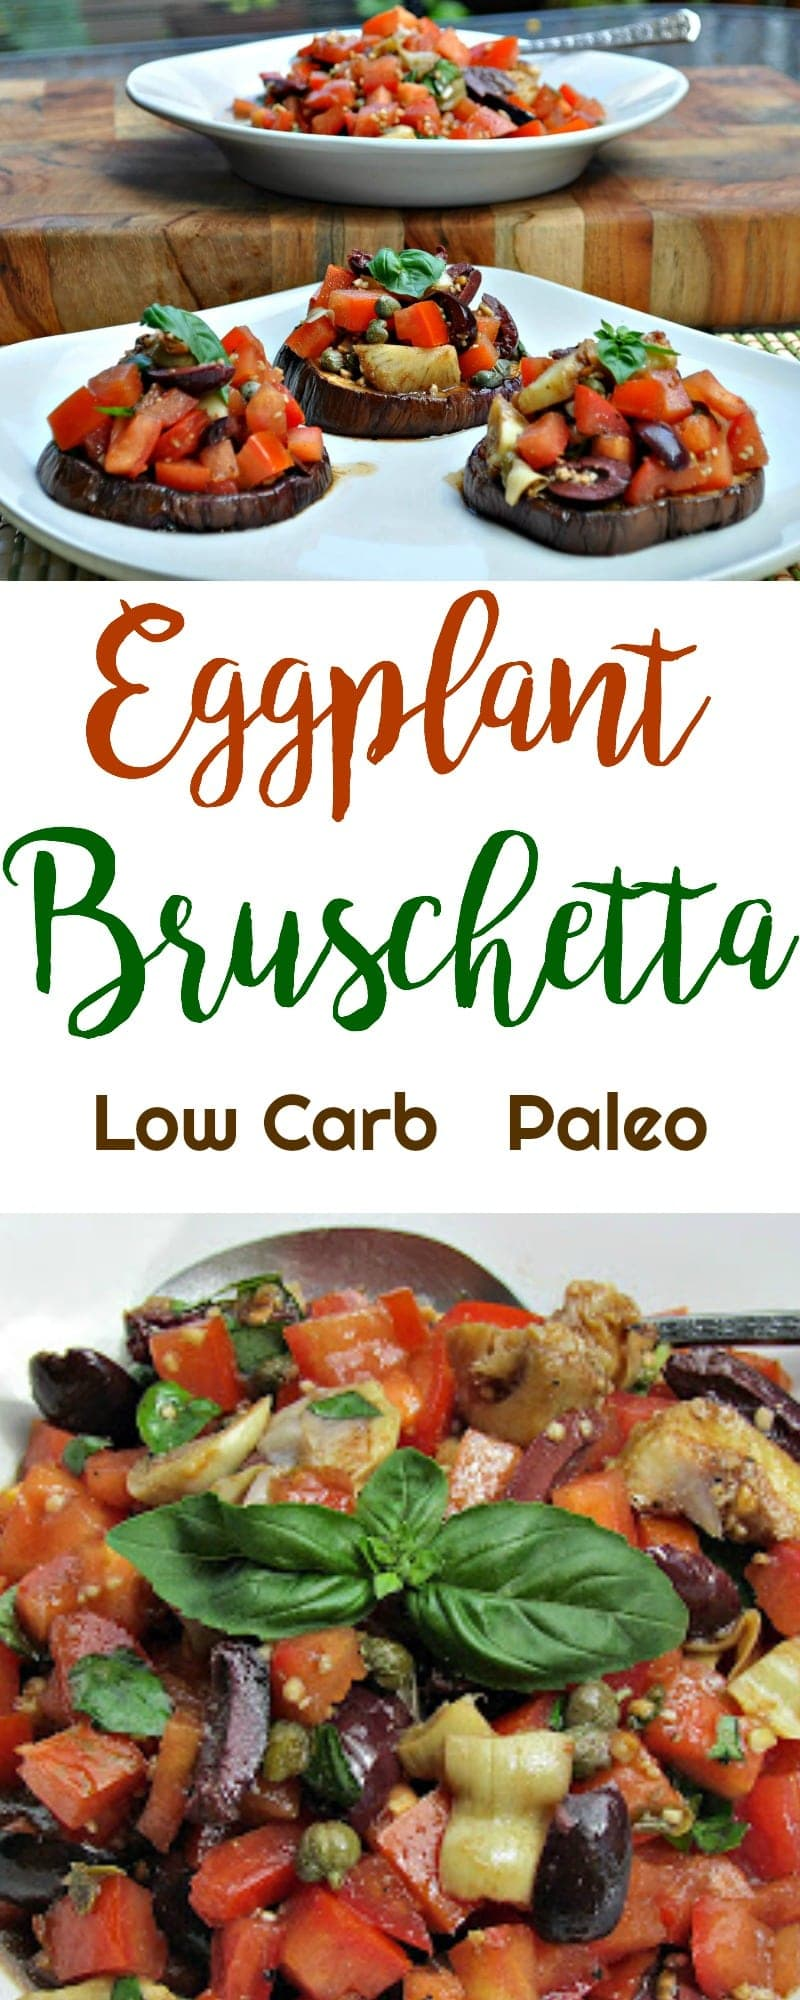 Eggplant Bruschetta | Peace Love and Low Carb  #lowcarb #paleo #eggplantbruschetta #bruschetta #lowcarbrecipe